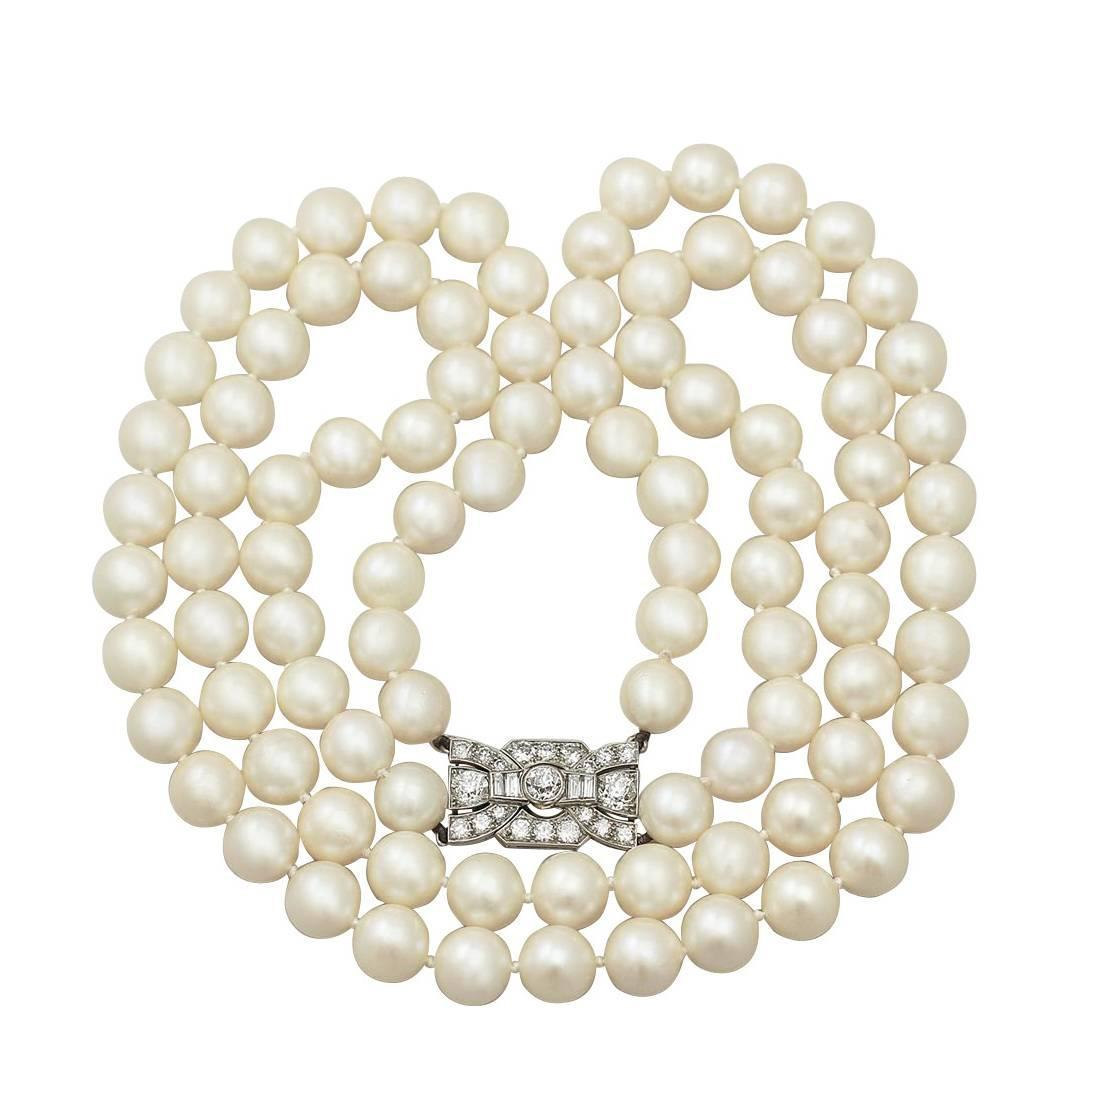 Pearl Necklace Clasps: Types Of Pearl Necklace Clasps